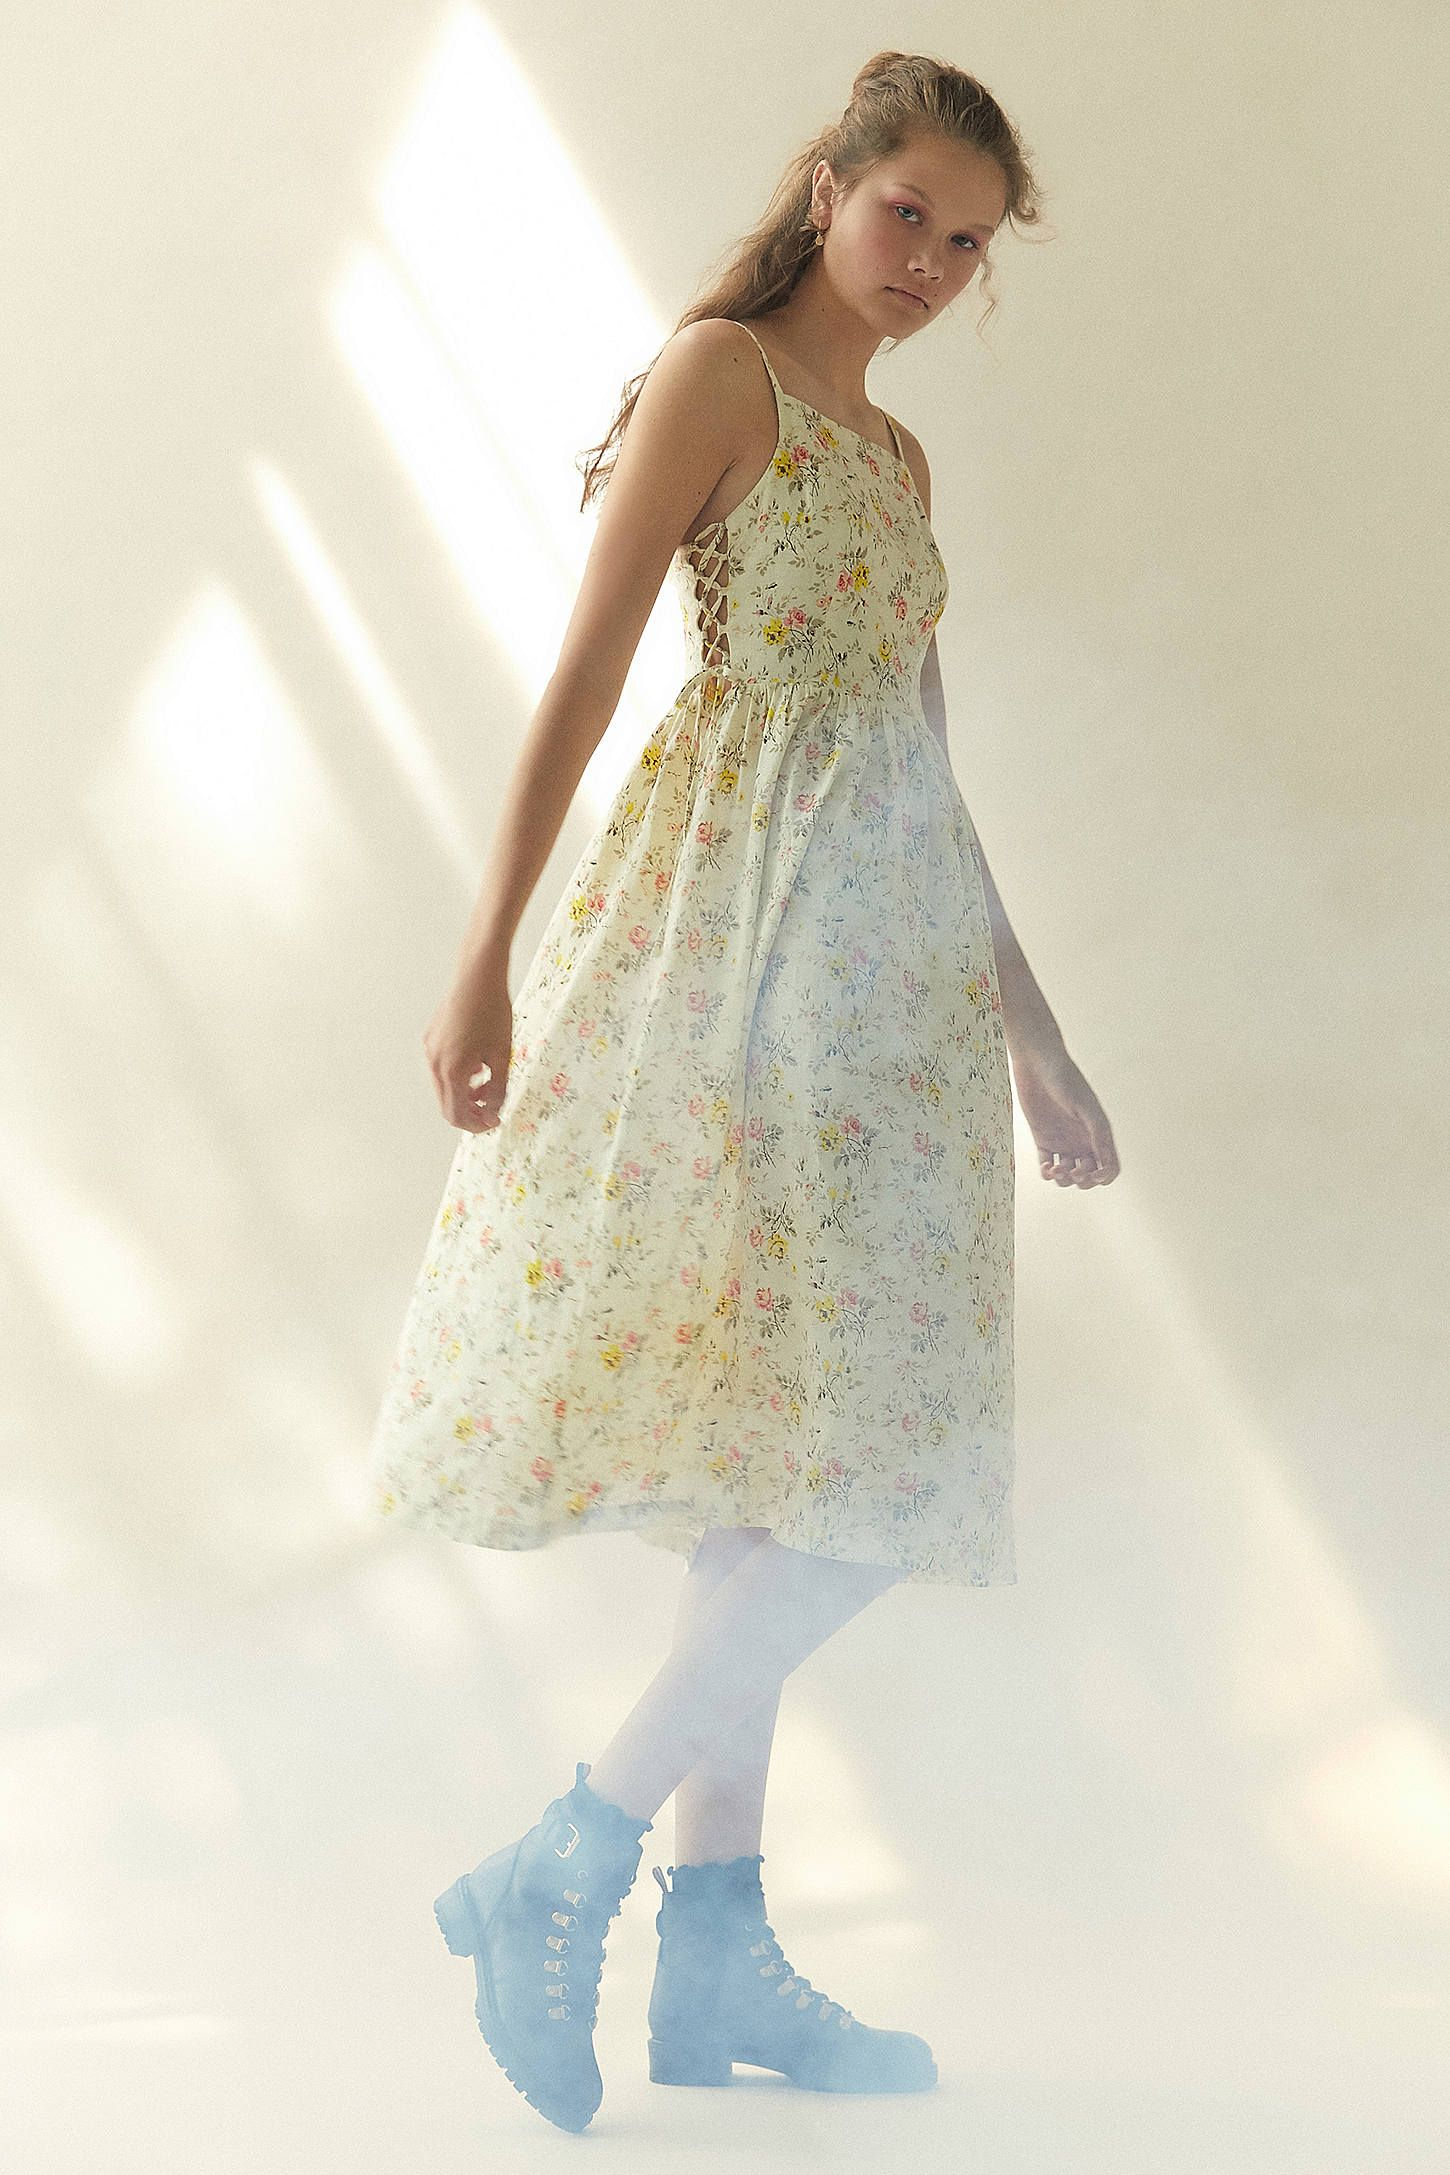 8d41195a7a Laura Ashley   UO Lace-Up Midi Dress in 2019